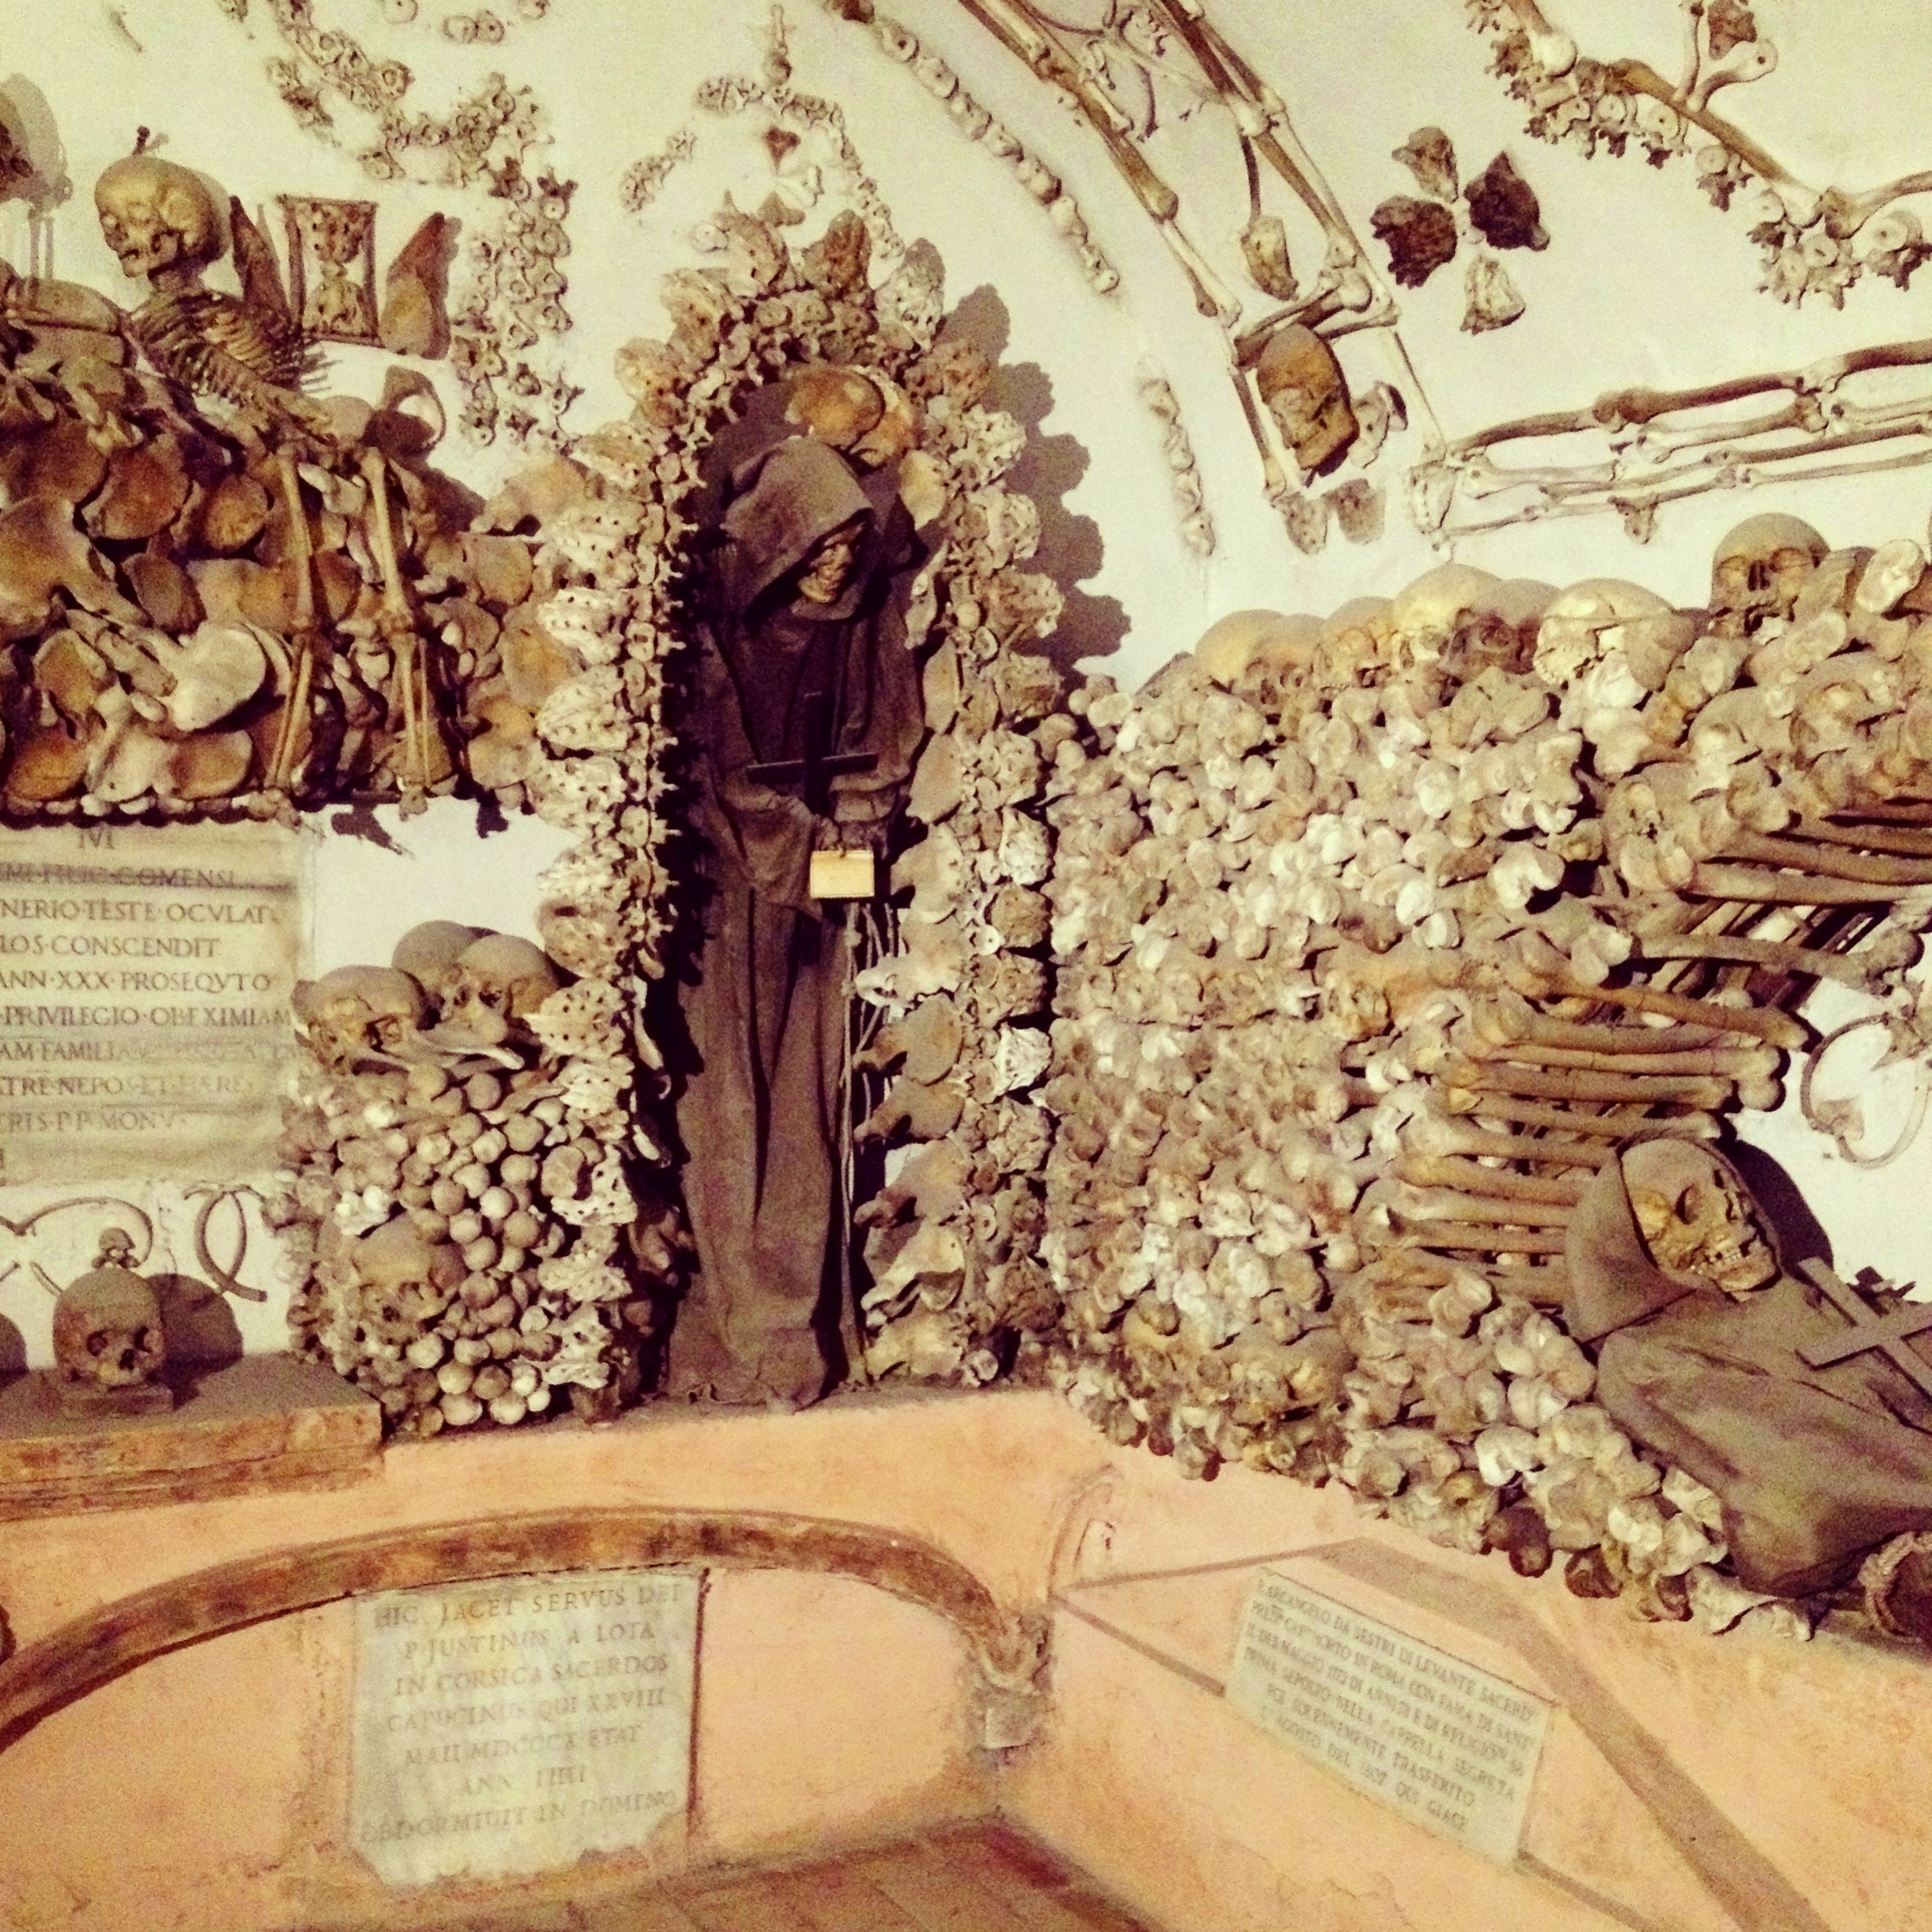 Capuchin Crypt, Bone Church, Rome